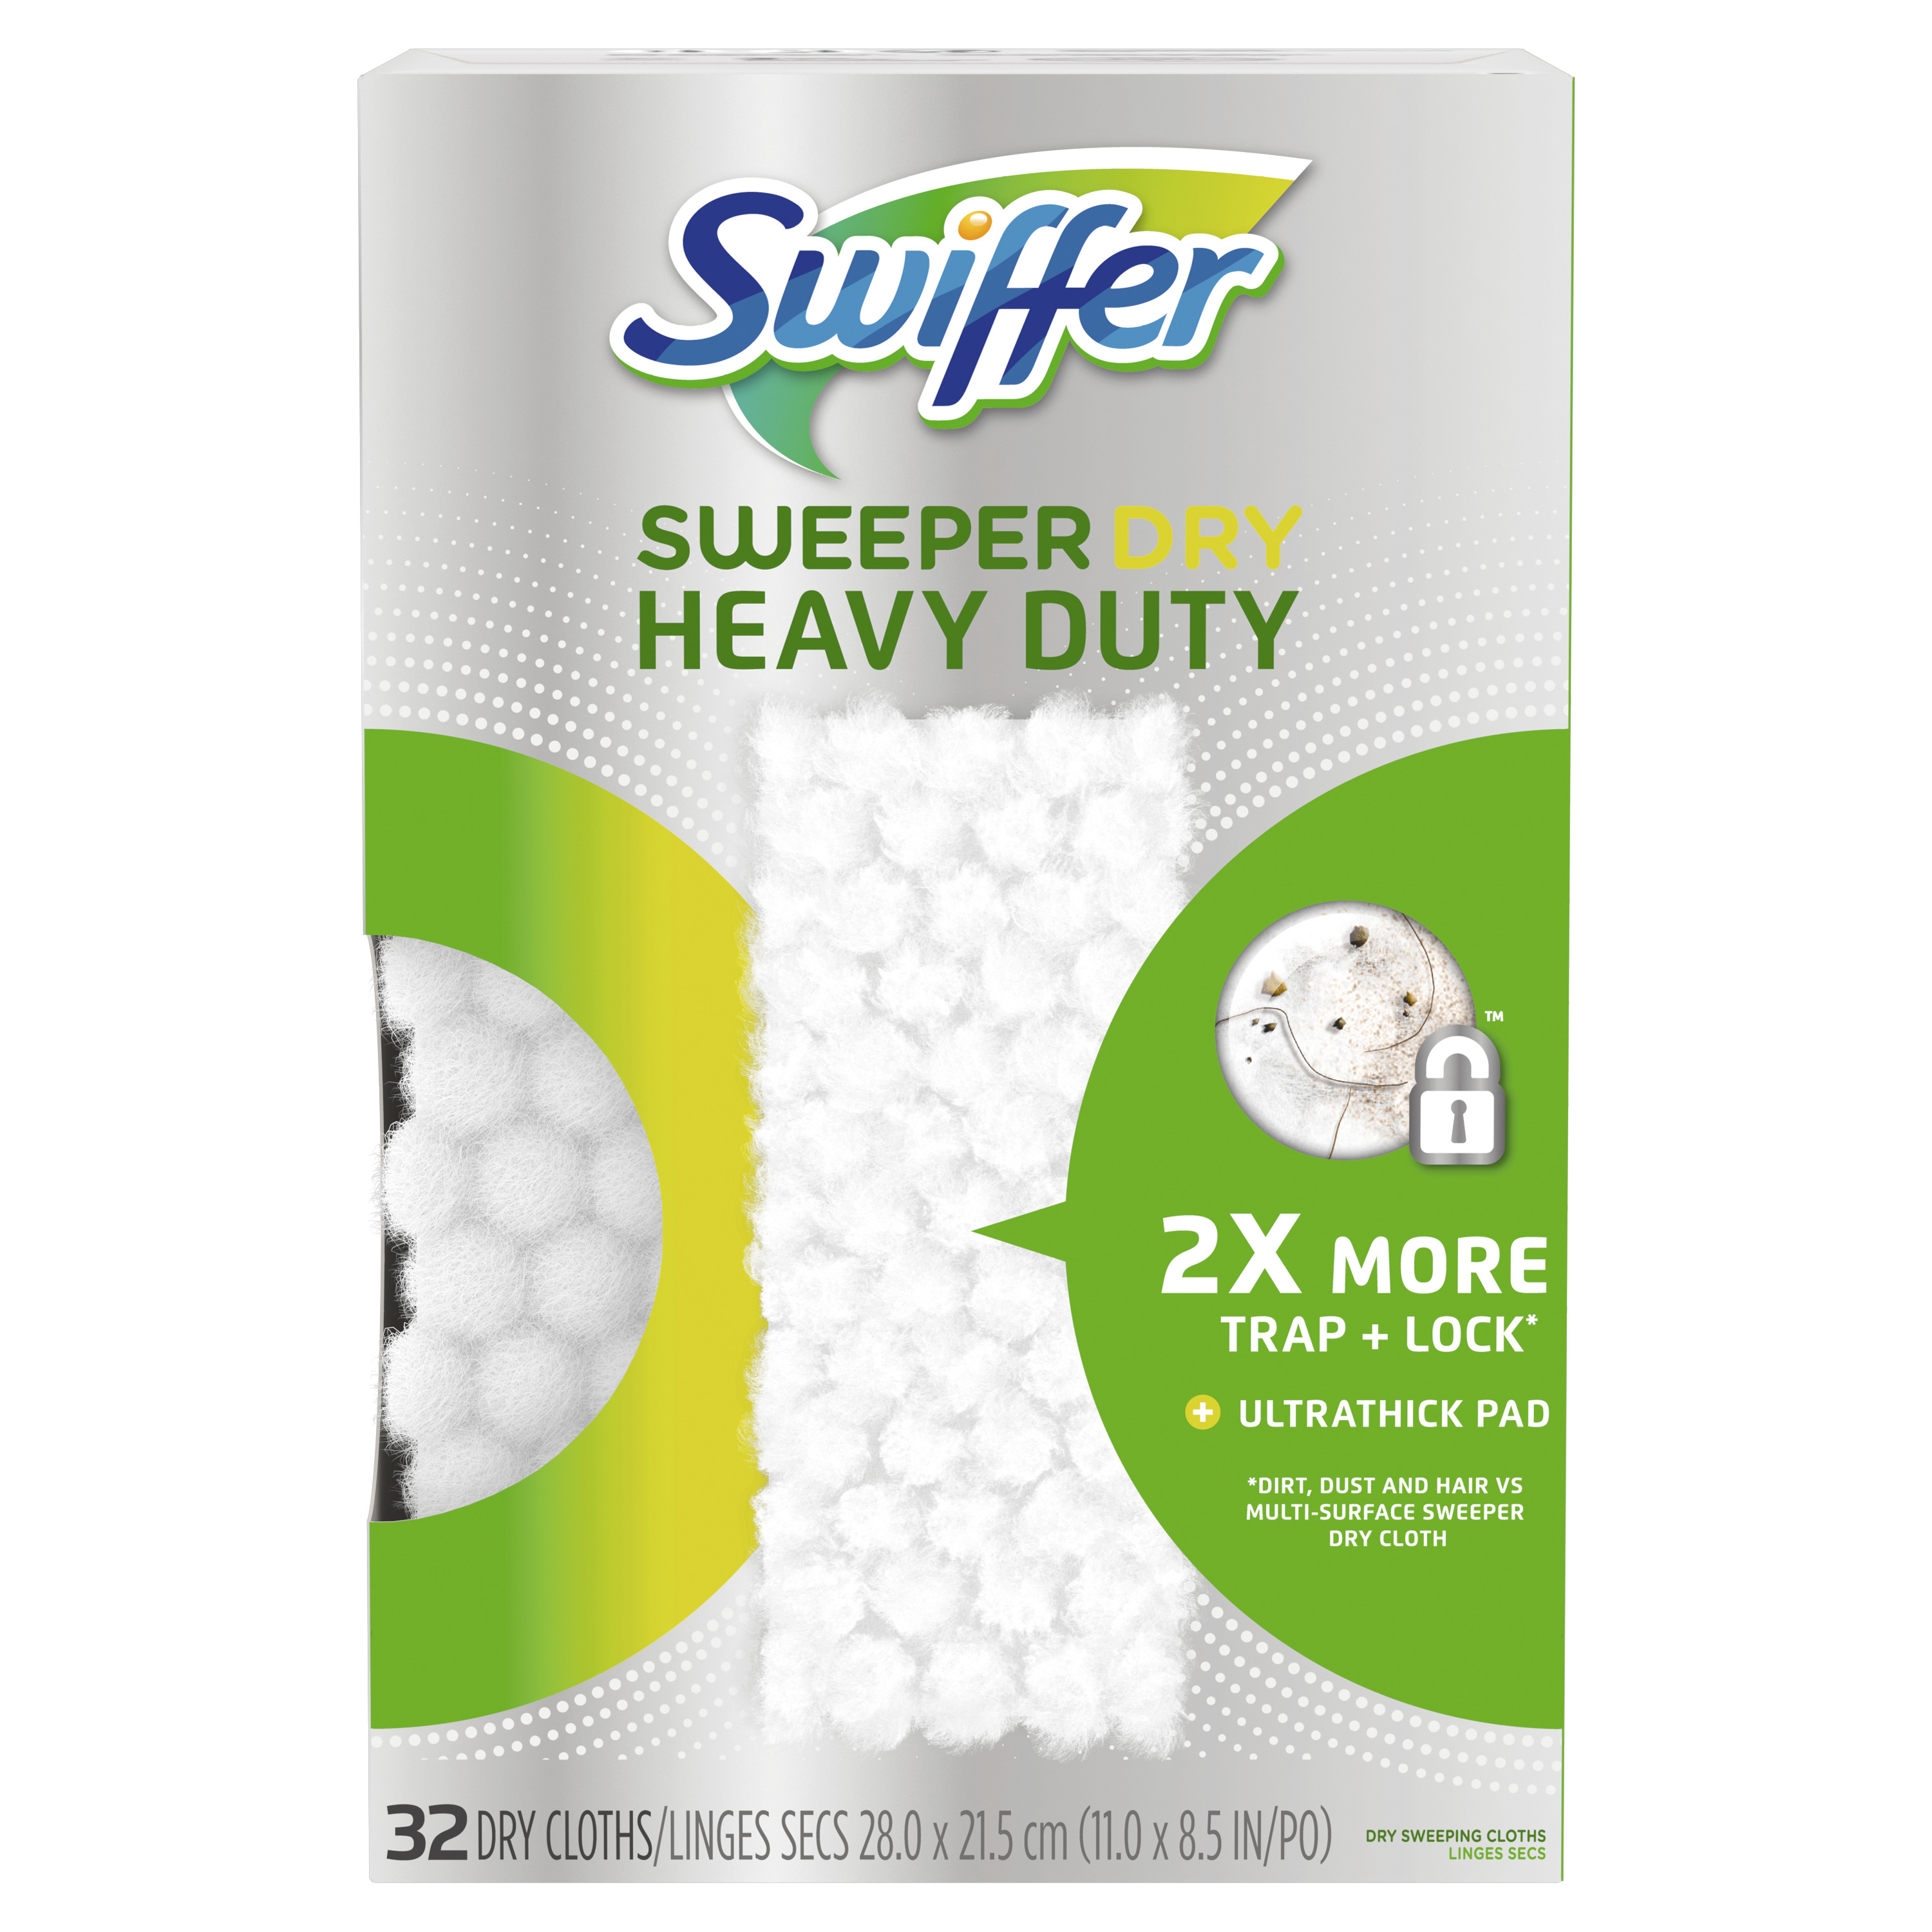 Swiffer Sweeper Heavy Duty Dry Sweeping Cloths, 32 Count